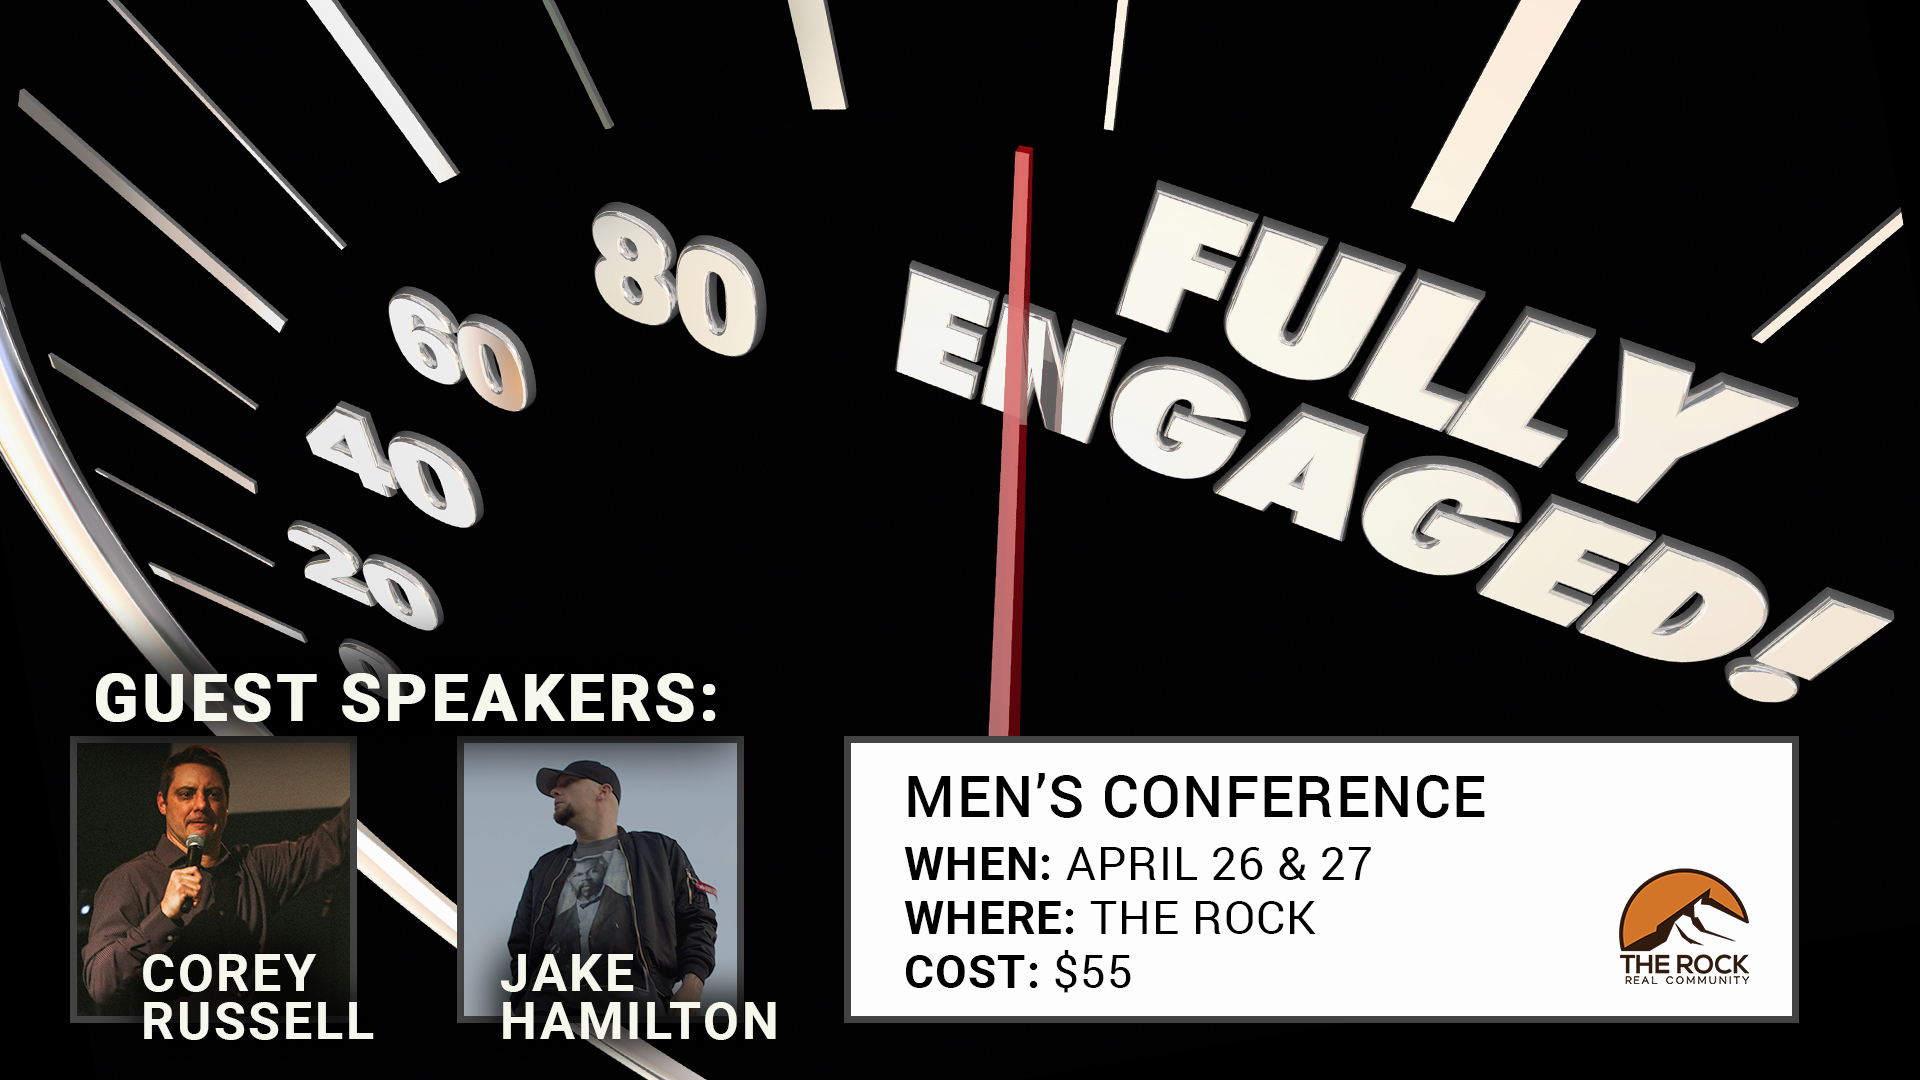 Men's Conference: Fully Engaged. With guests Corey Russell & Jake Hamilton